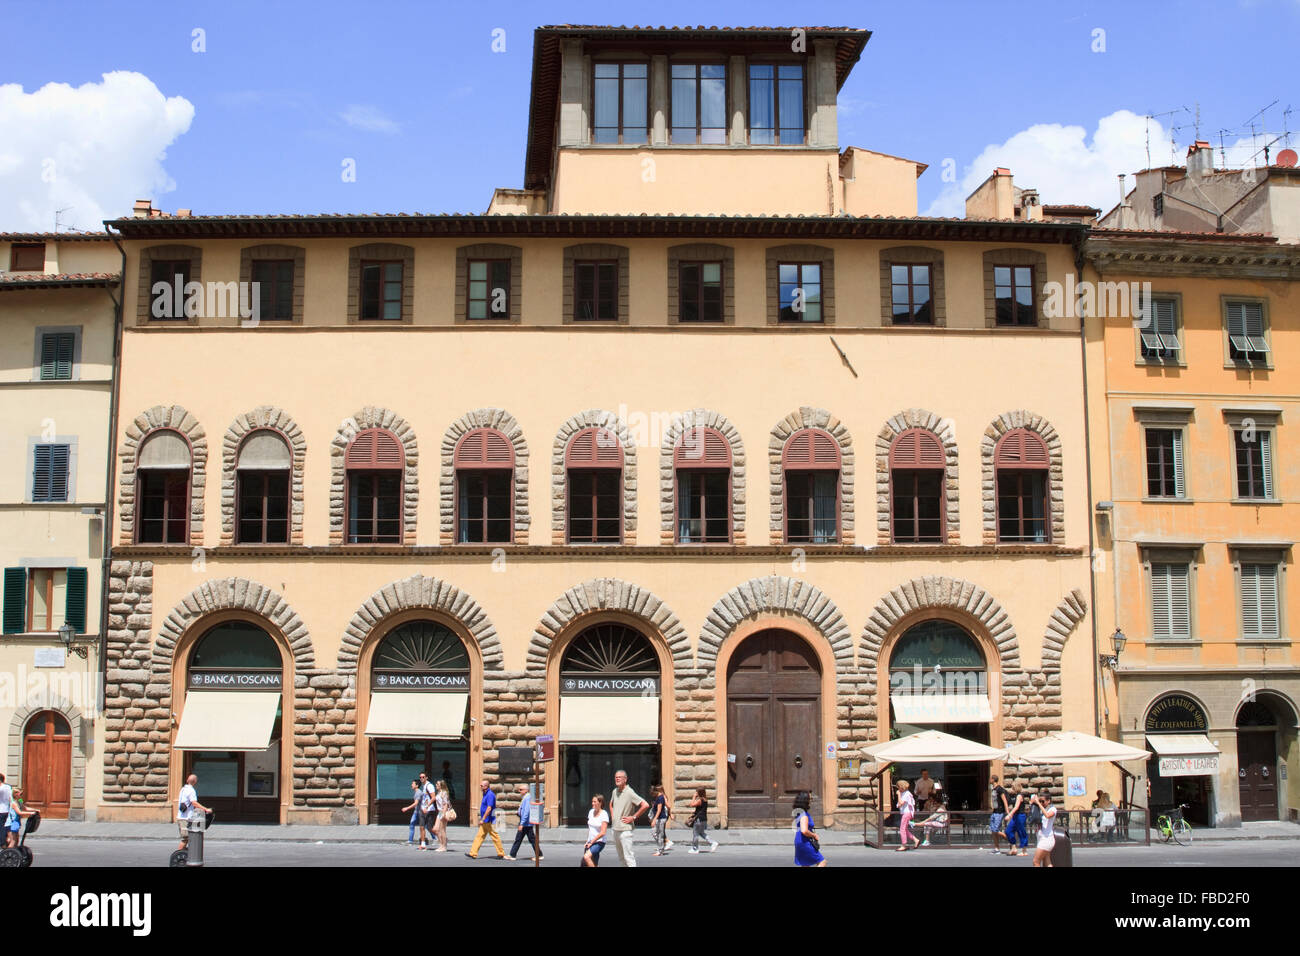 Piazza dei Pitti, Florence, Italy. - Stock Image